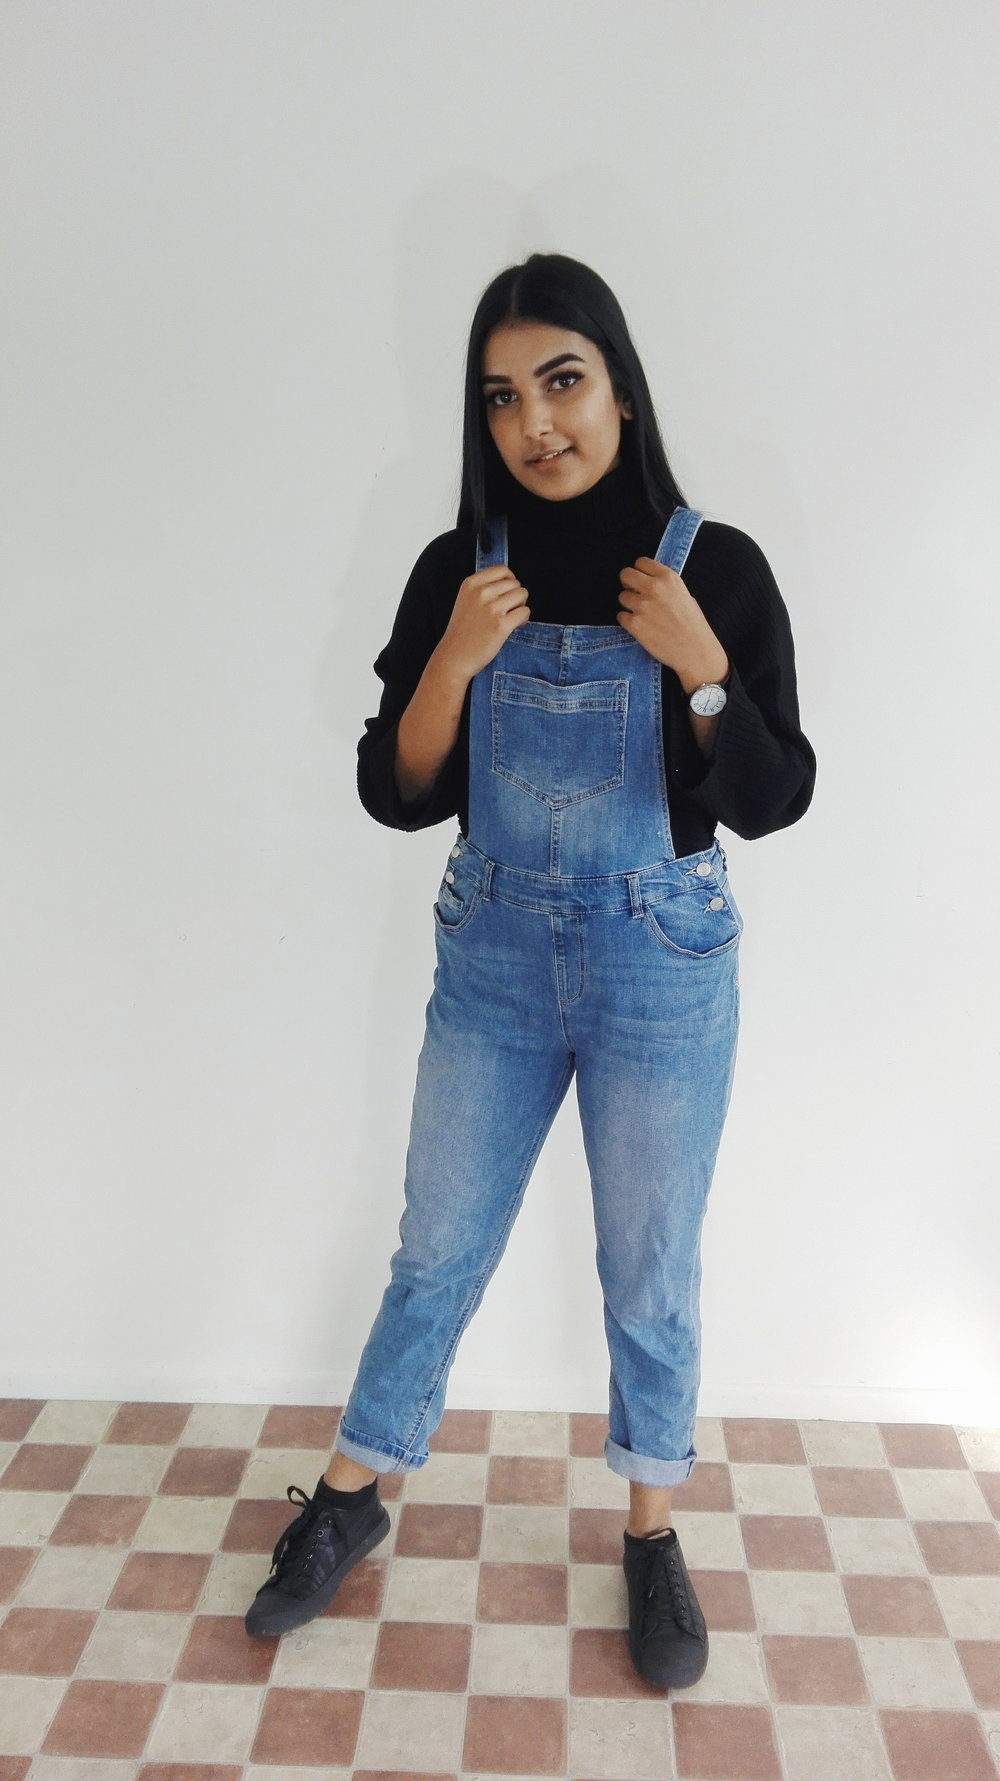 How could I forget overalls. Definitely can wear them in winter with your cozy turtleneck.